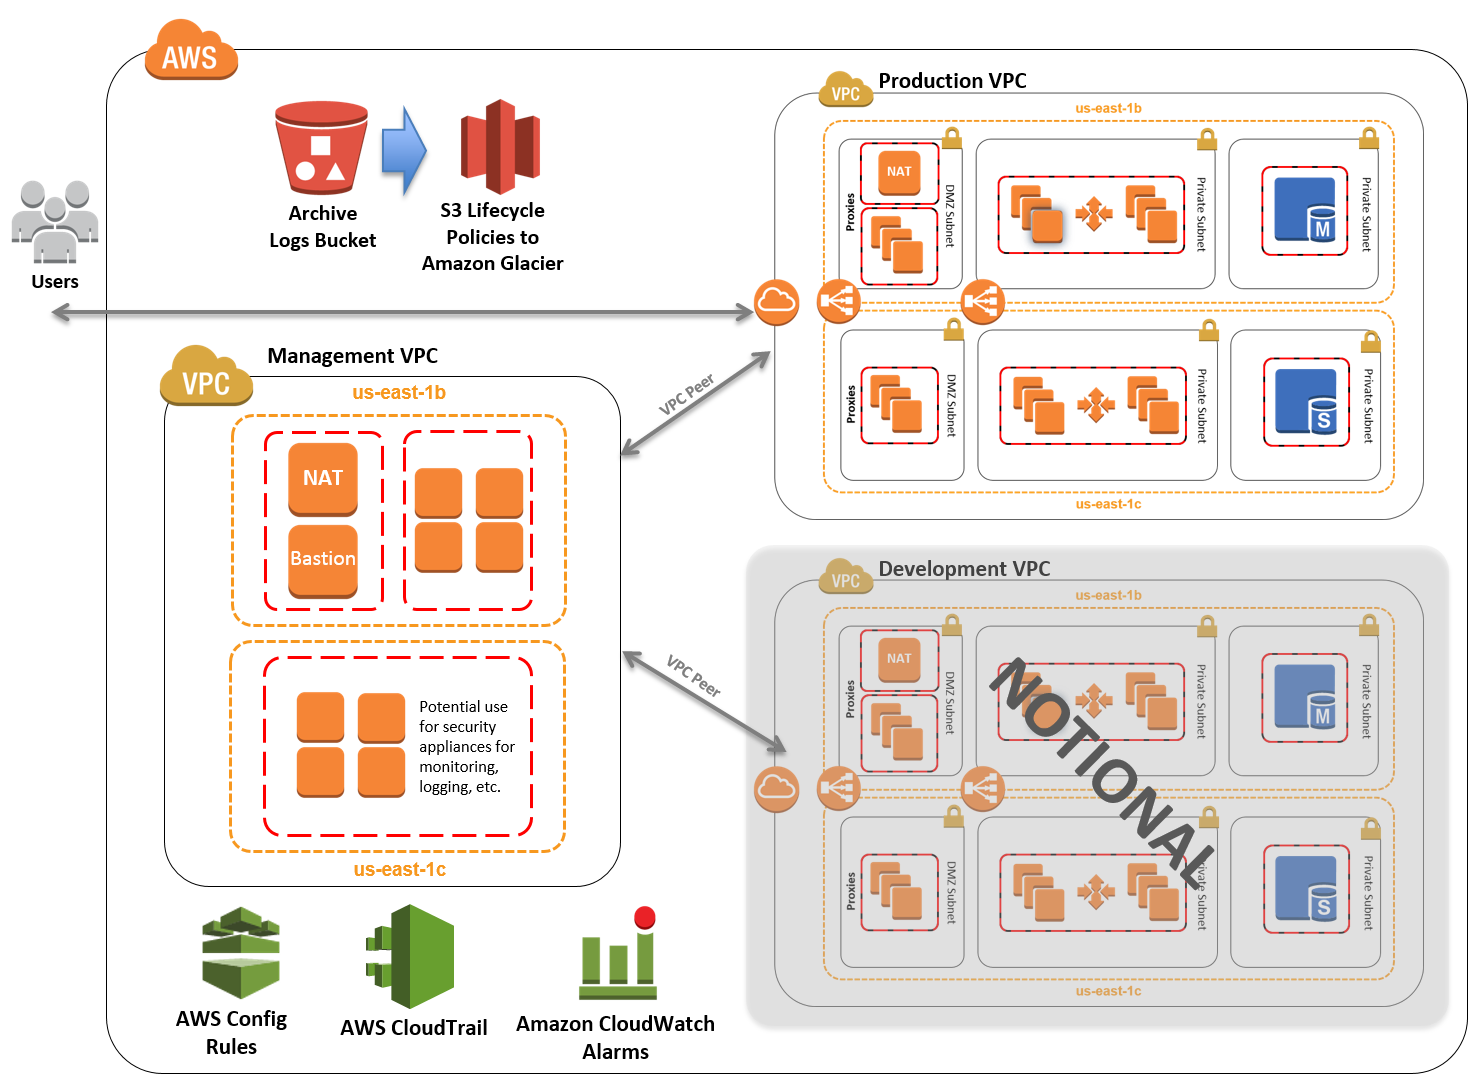 Quick Start Architecture For NIST Based Frameworks On The AWS Cloud